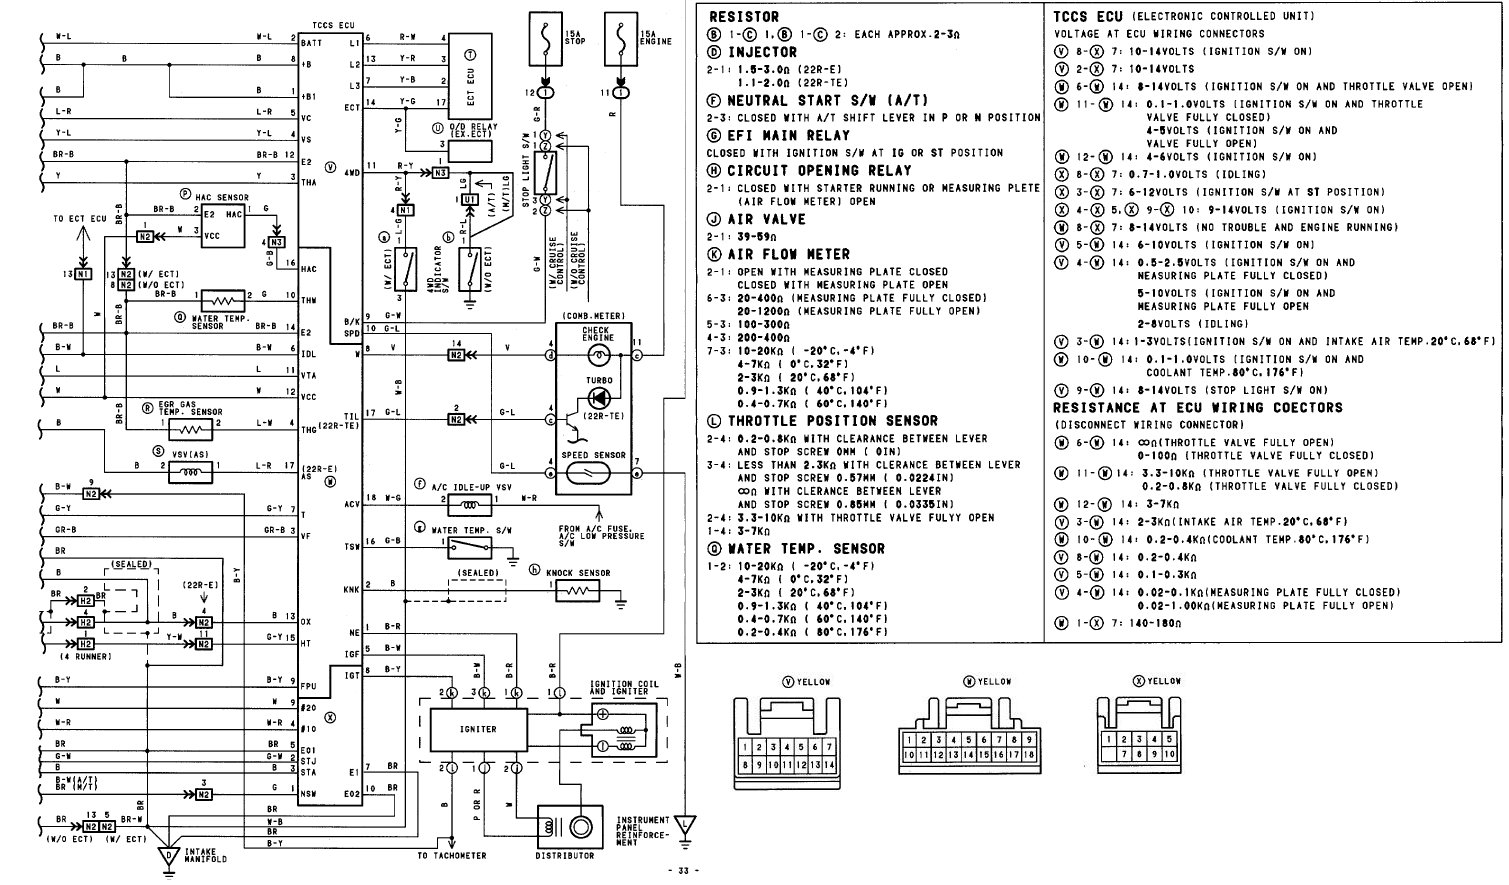 toyota 4runner wiring diagram jHkLHrj 2005 toyota 4runner wiring diagram wiring diagram simonand 2004 toyota 4runner radio wiring diagram at crackthecode.co